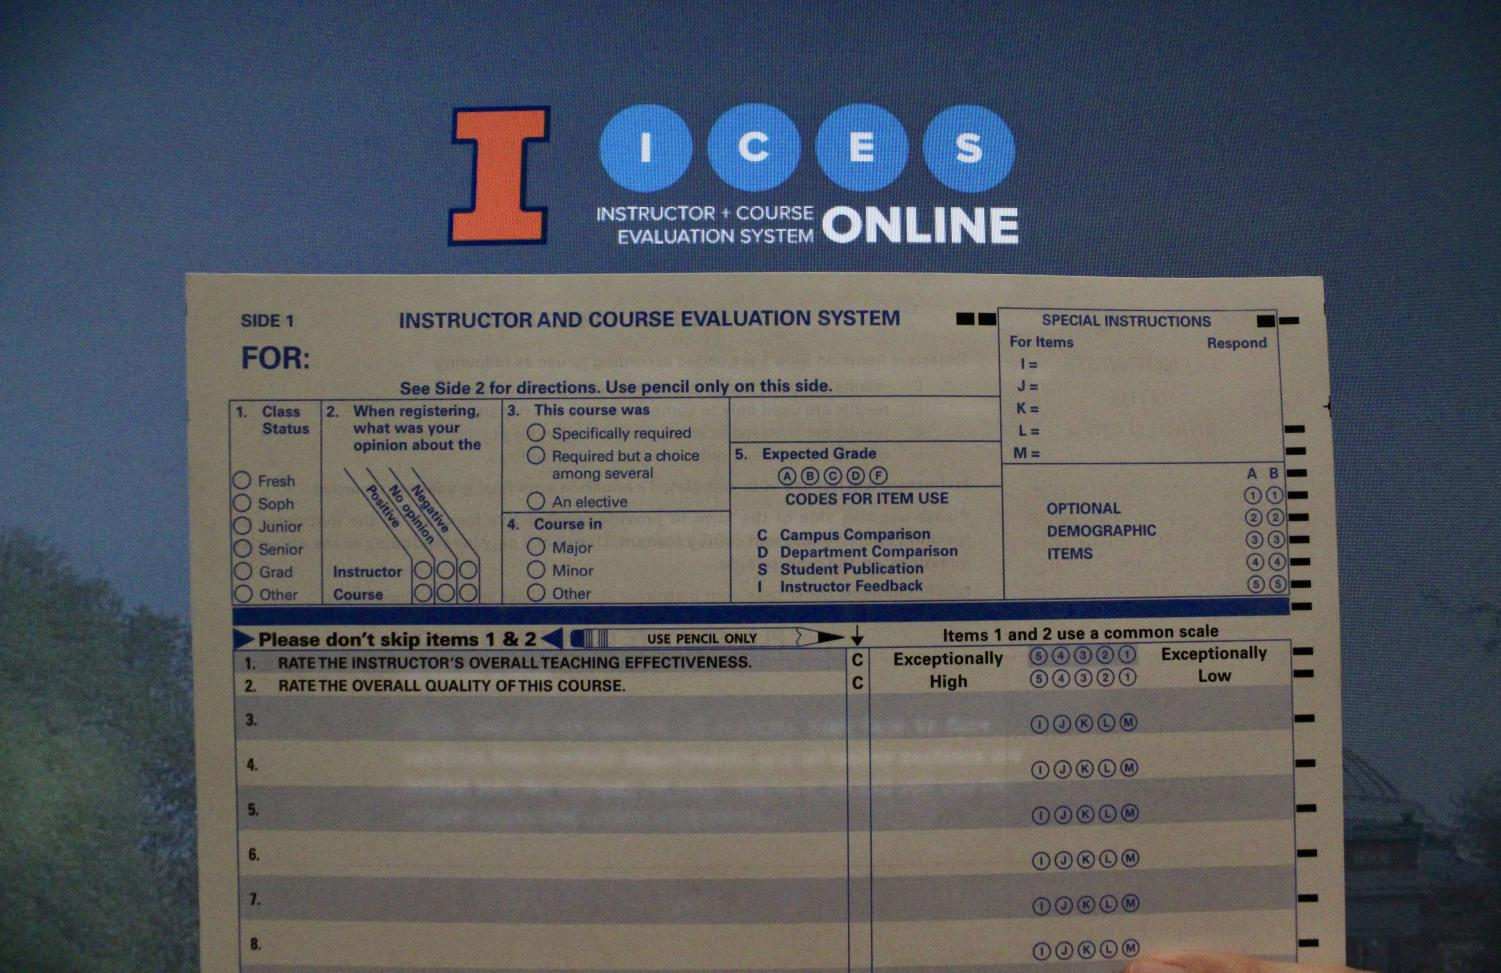 A standard hard copy of a course evaluation form provided by Eric Keely, assistant director of measurement and evaluation at the Center for Innovation in Teaching & Learning, and Rajat Chadha, measurement specialist at CITL, in the Armory on Thursday.